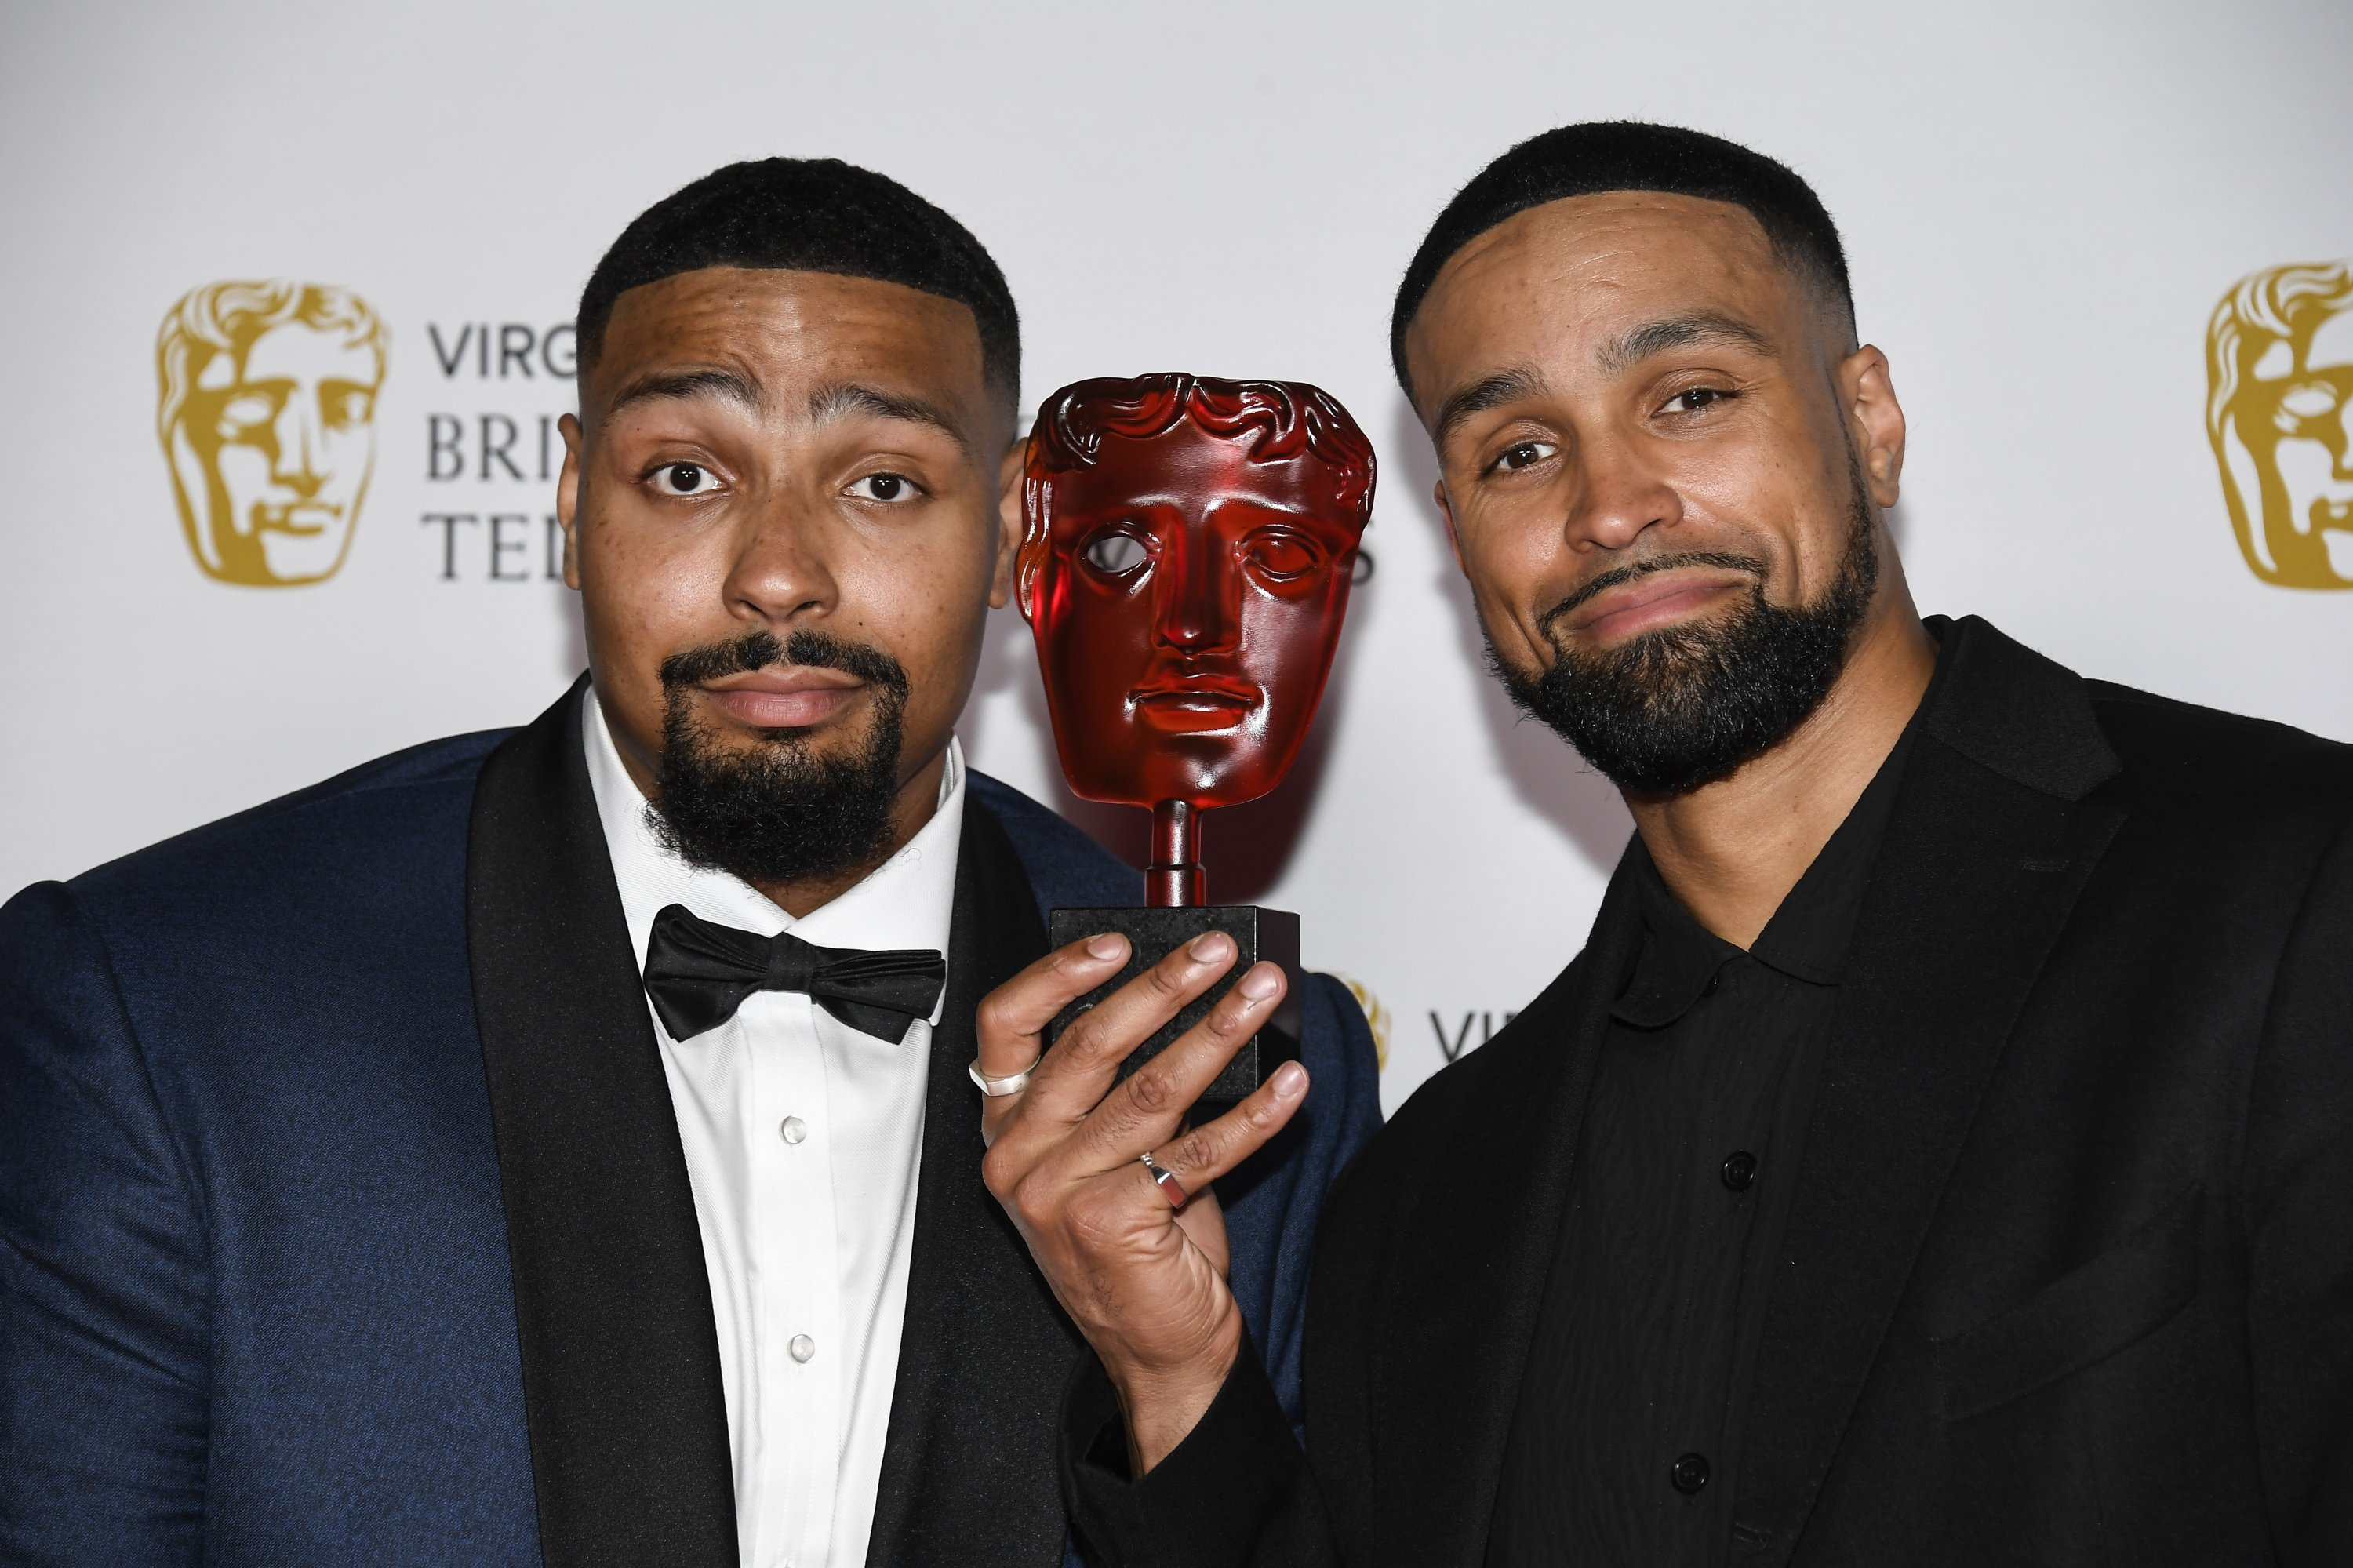 """Jordan Banjo (L) and Ashley Banjo pose with their must-see moment award in """"Britain's Got Talent,"""" backstage at the British Academy Television Awards in London, U.K., June 6, 2021. (AP Photo)"""